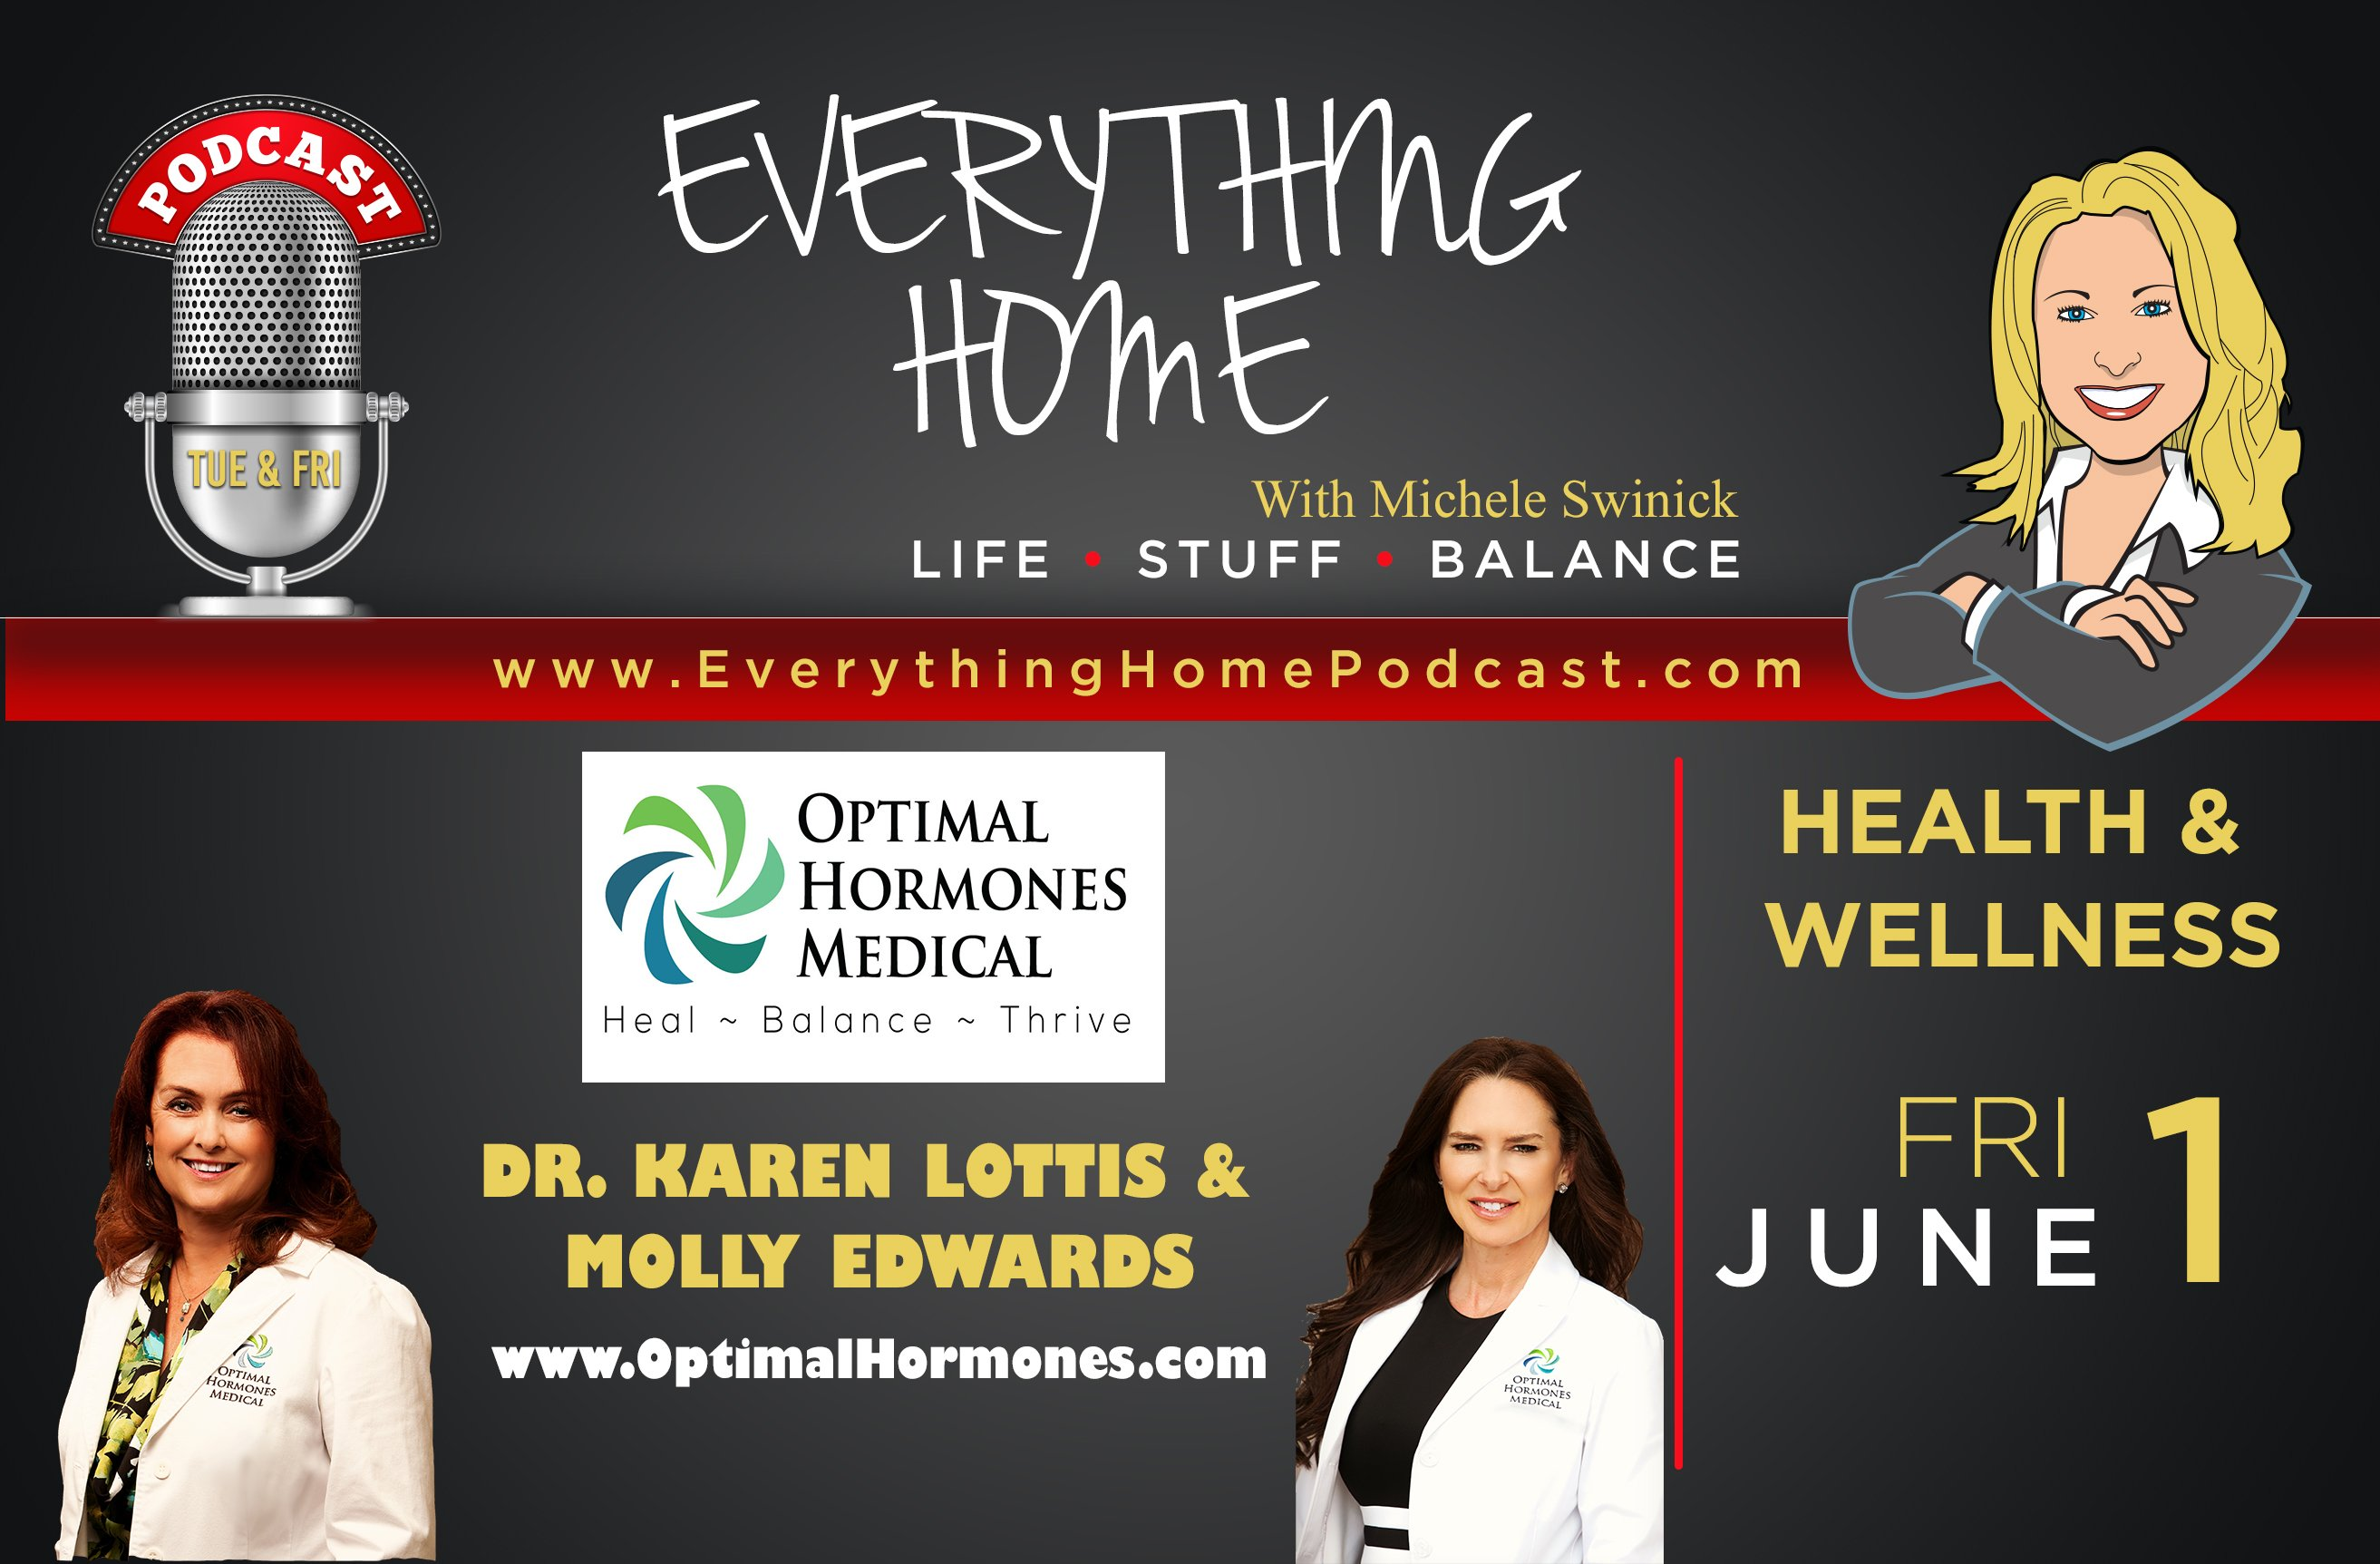 EVERYTHING HOME PODCAST - OPTIMAL HORMONES MEDICAL - Dr. Karen Lottis and Molly Edwards - JUNE 1